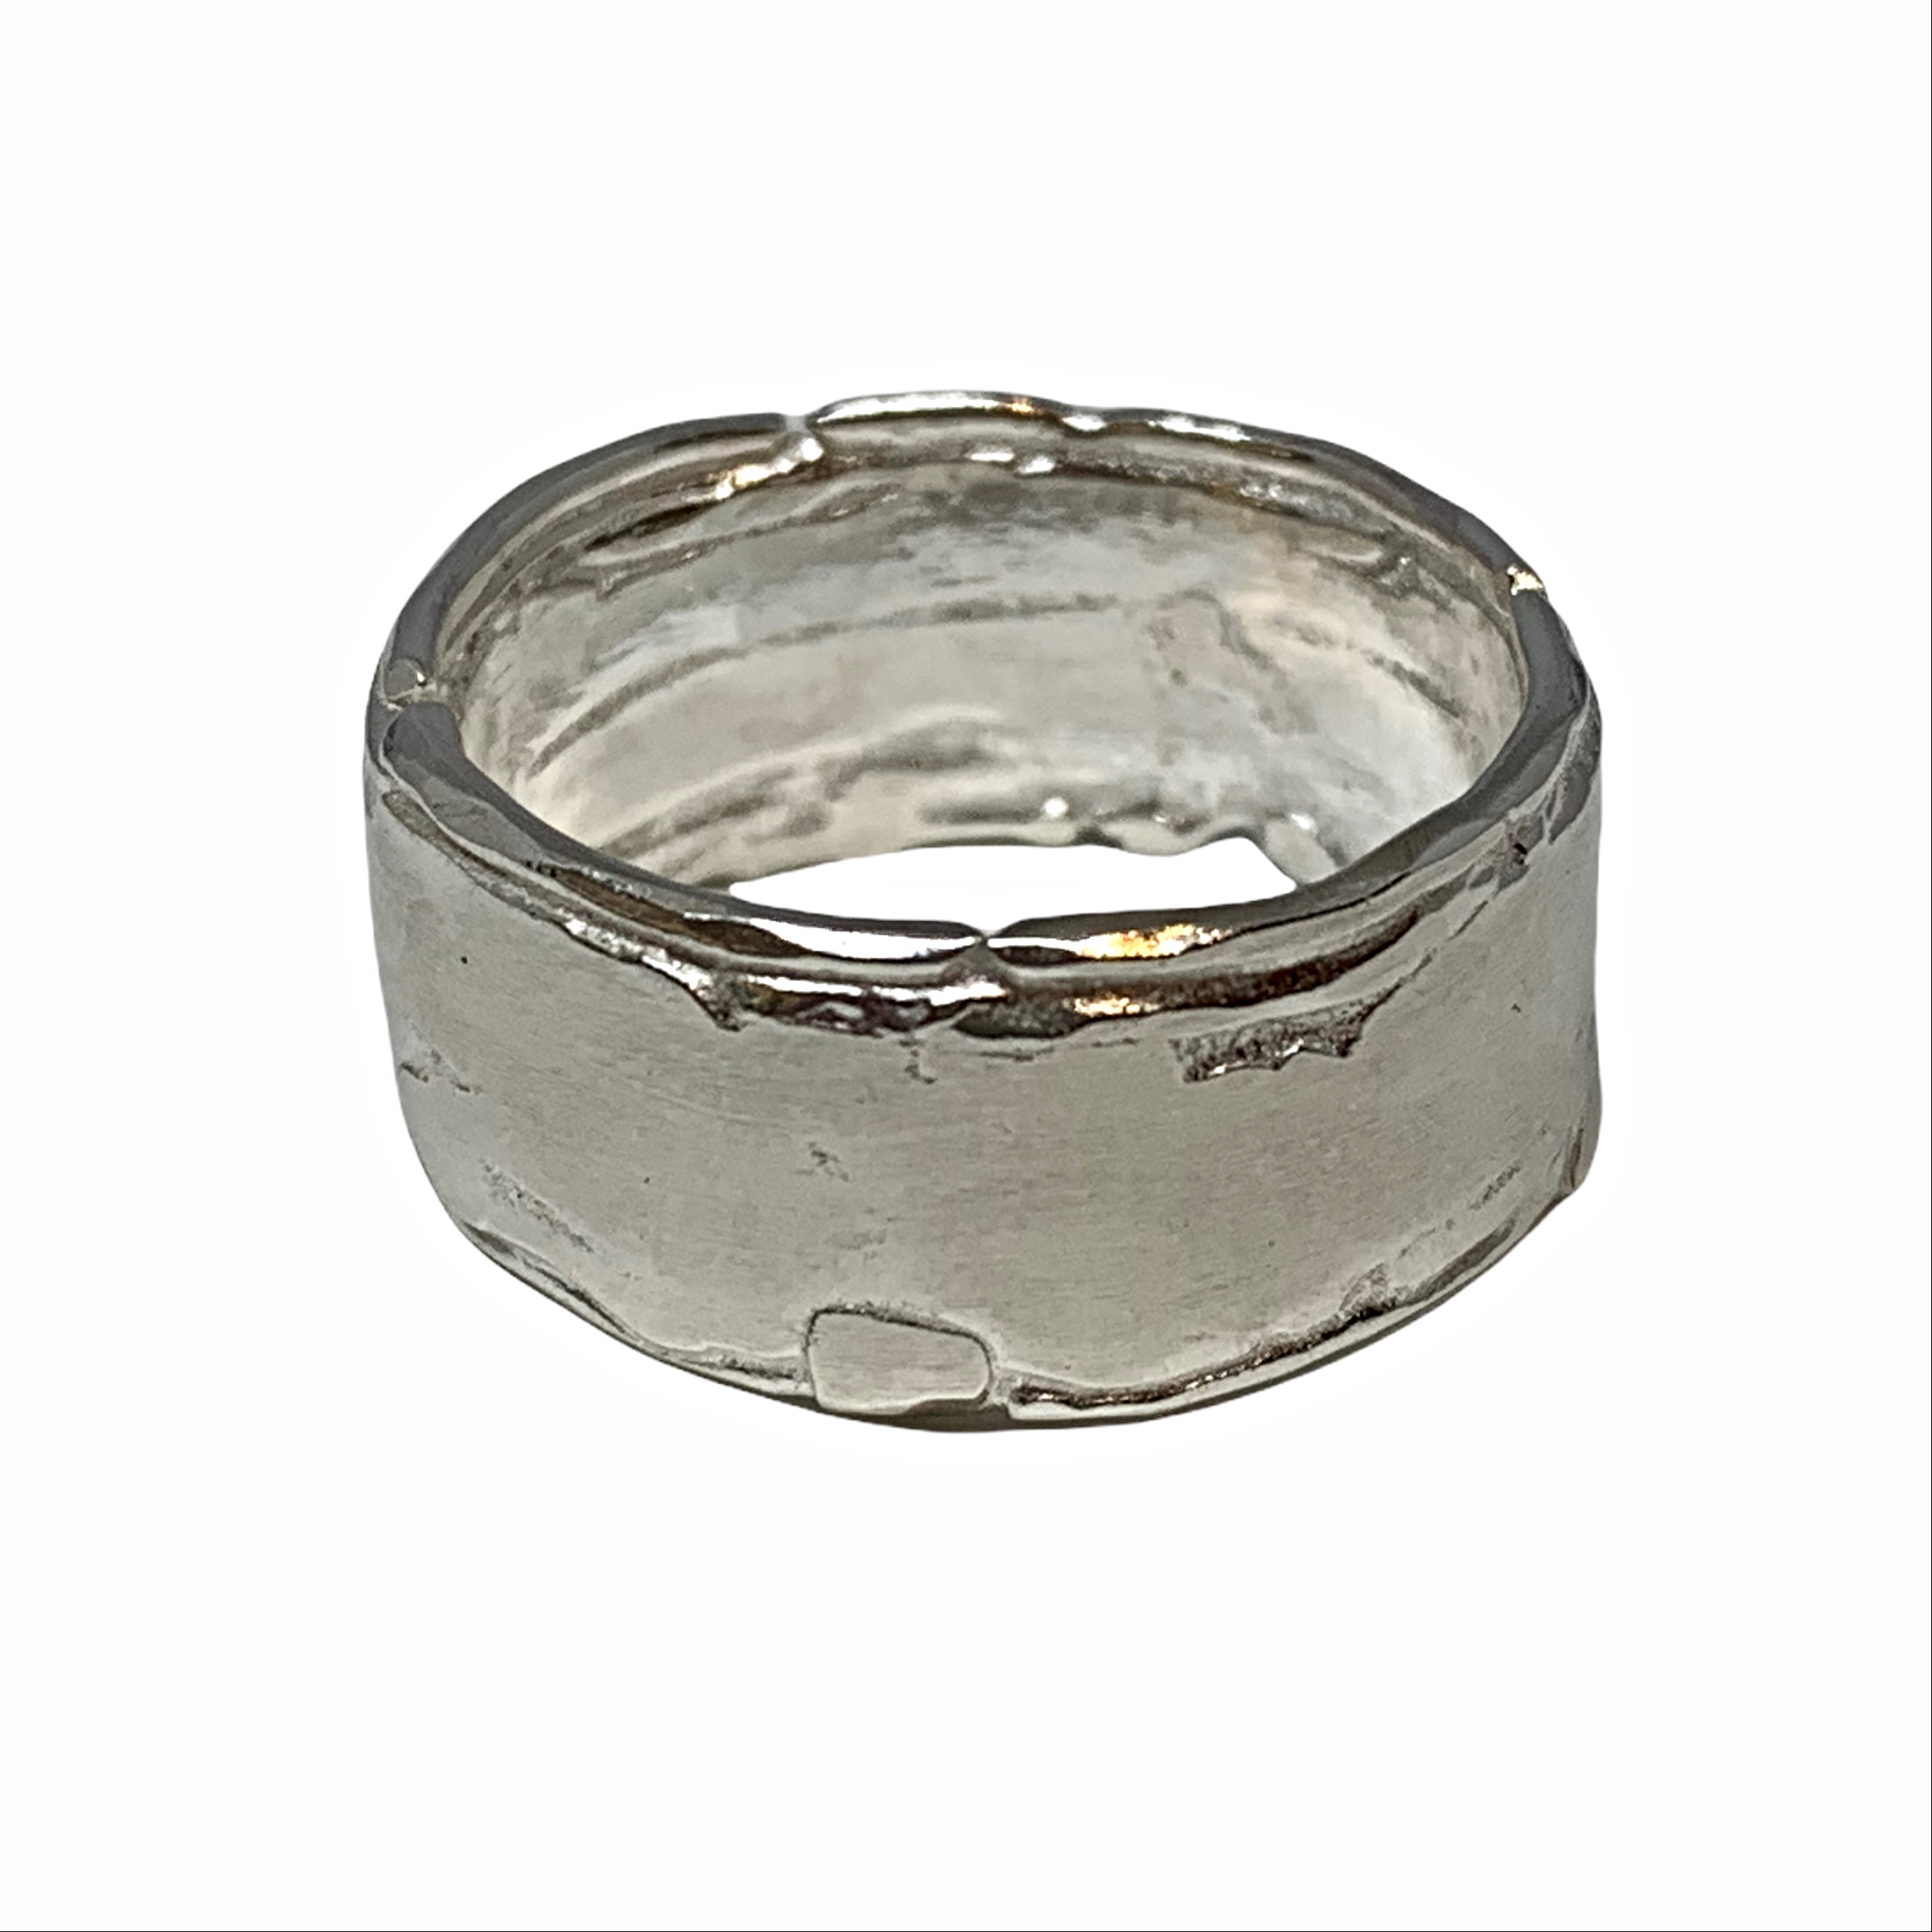 Handmade sterling silver ring by A&R Jewellery | Effusion Art Gallery + Cast Glass Studio, Invermere BC